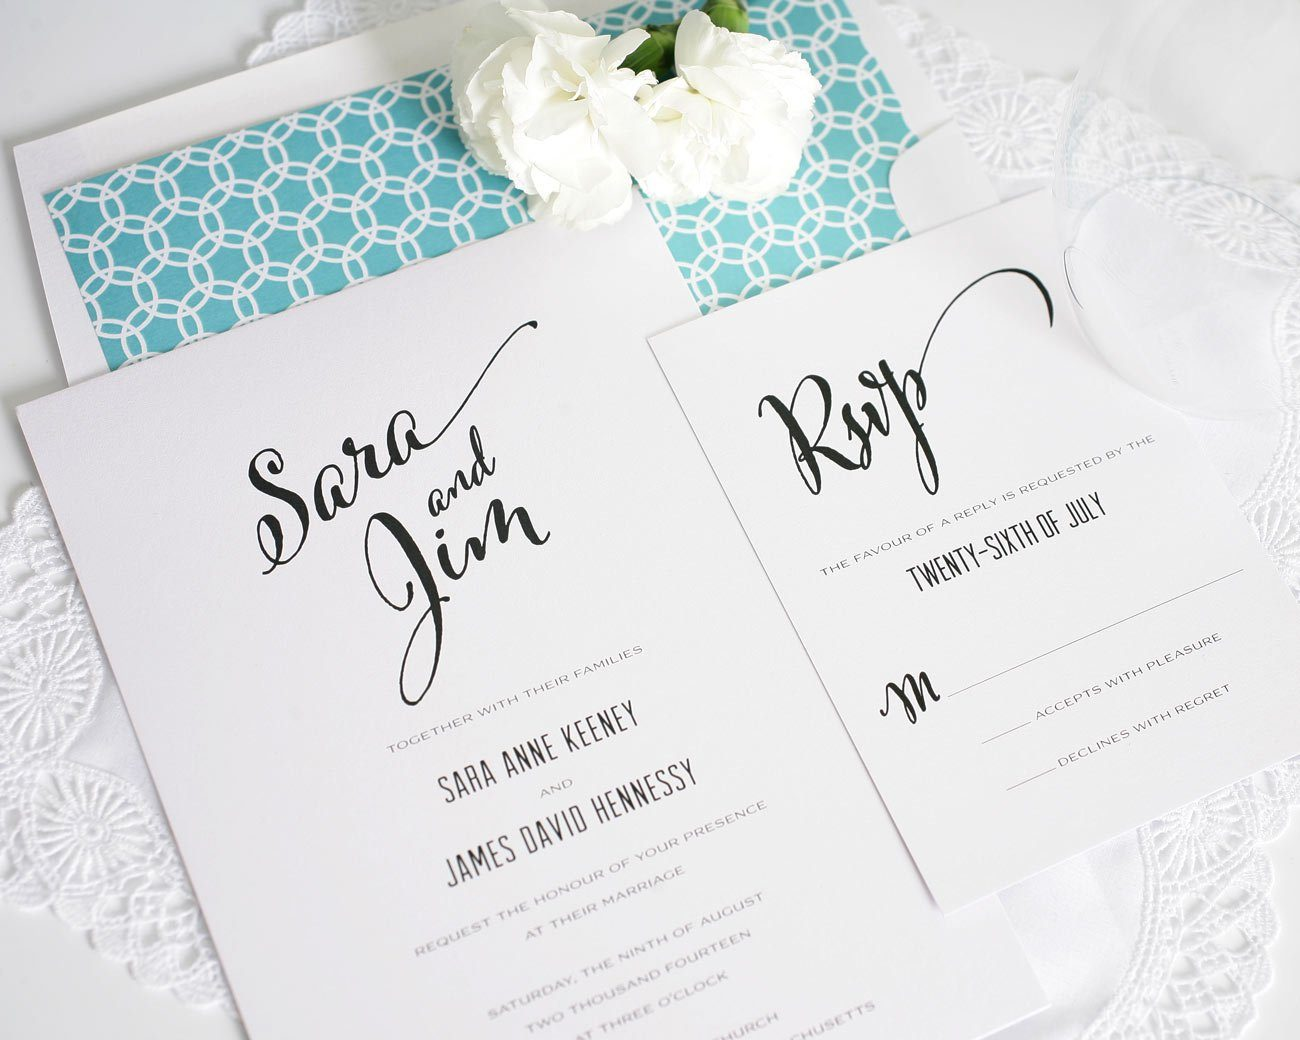 Modern wedding invitations with circle pattern